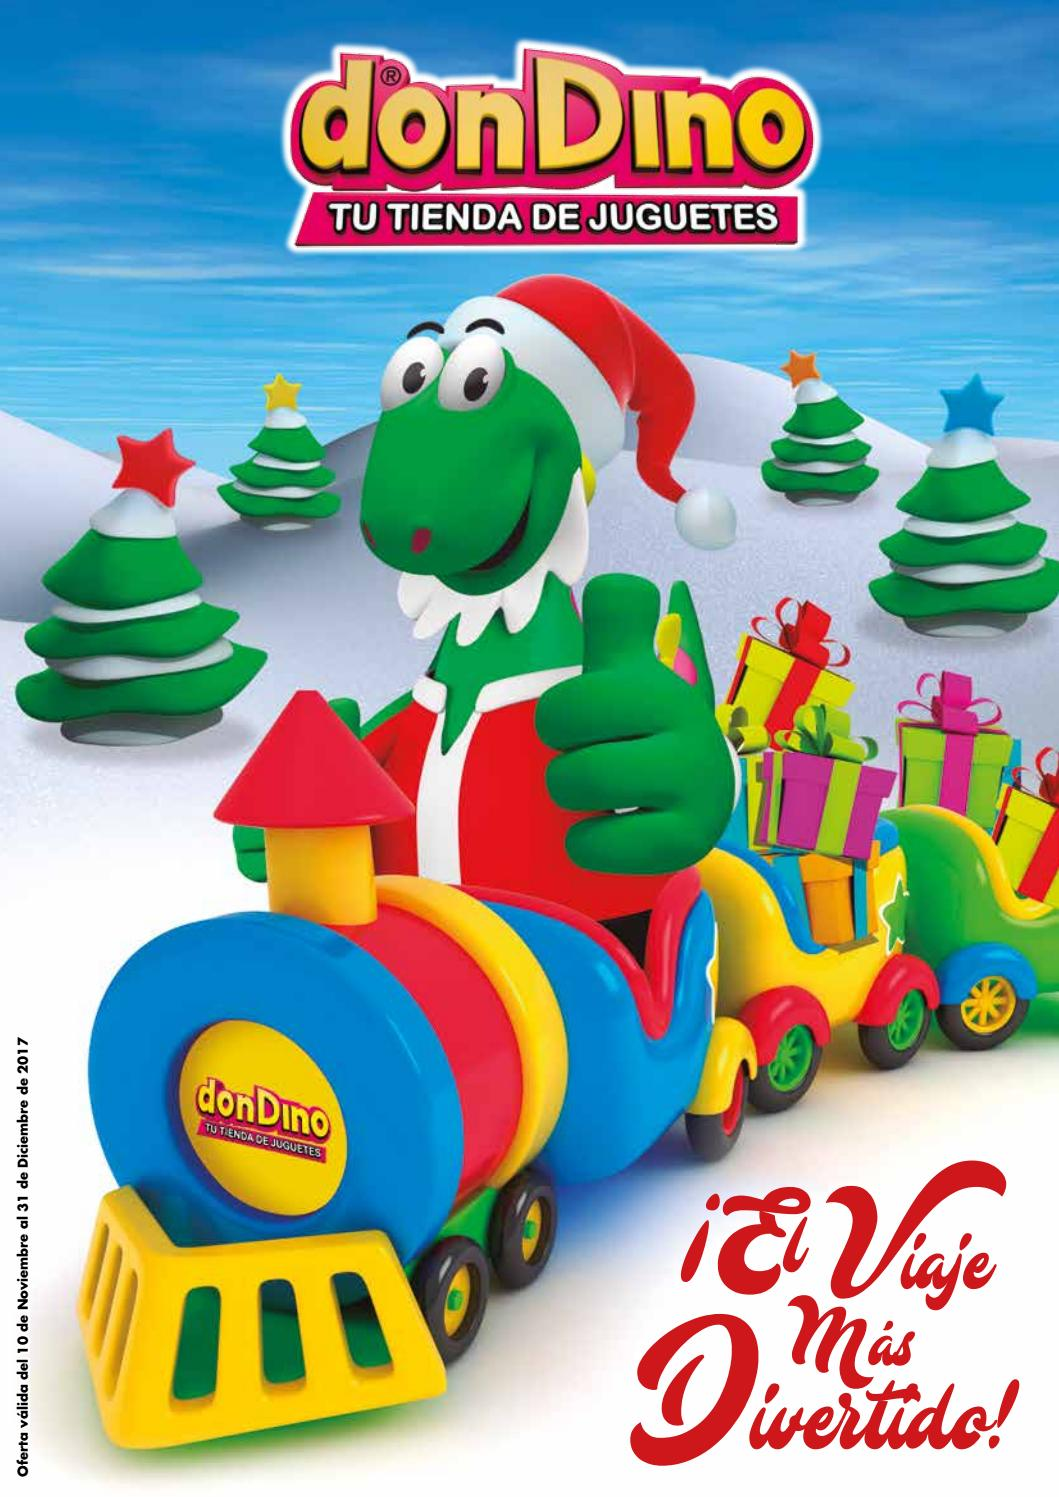 Don Dino navidad 2017 by DON DINO NORTE - issuu